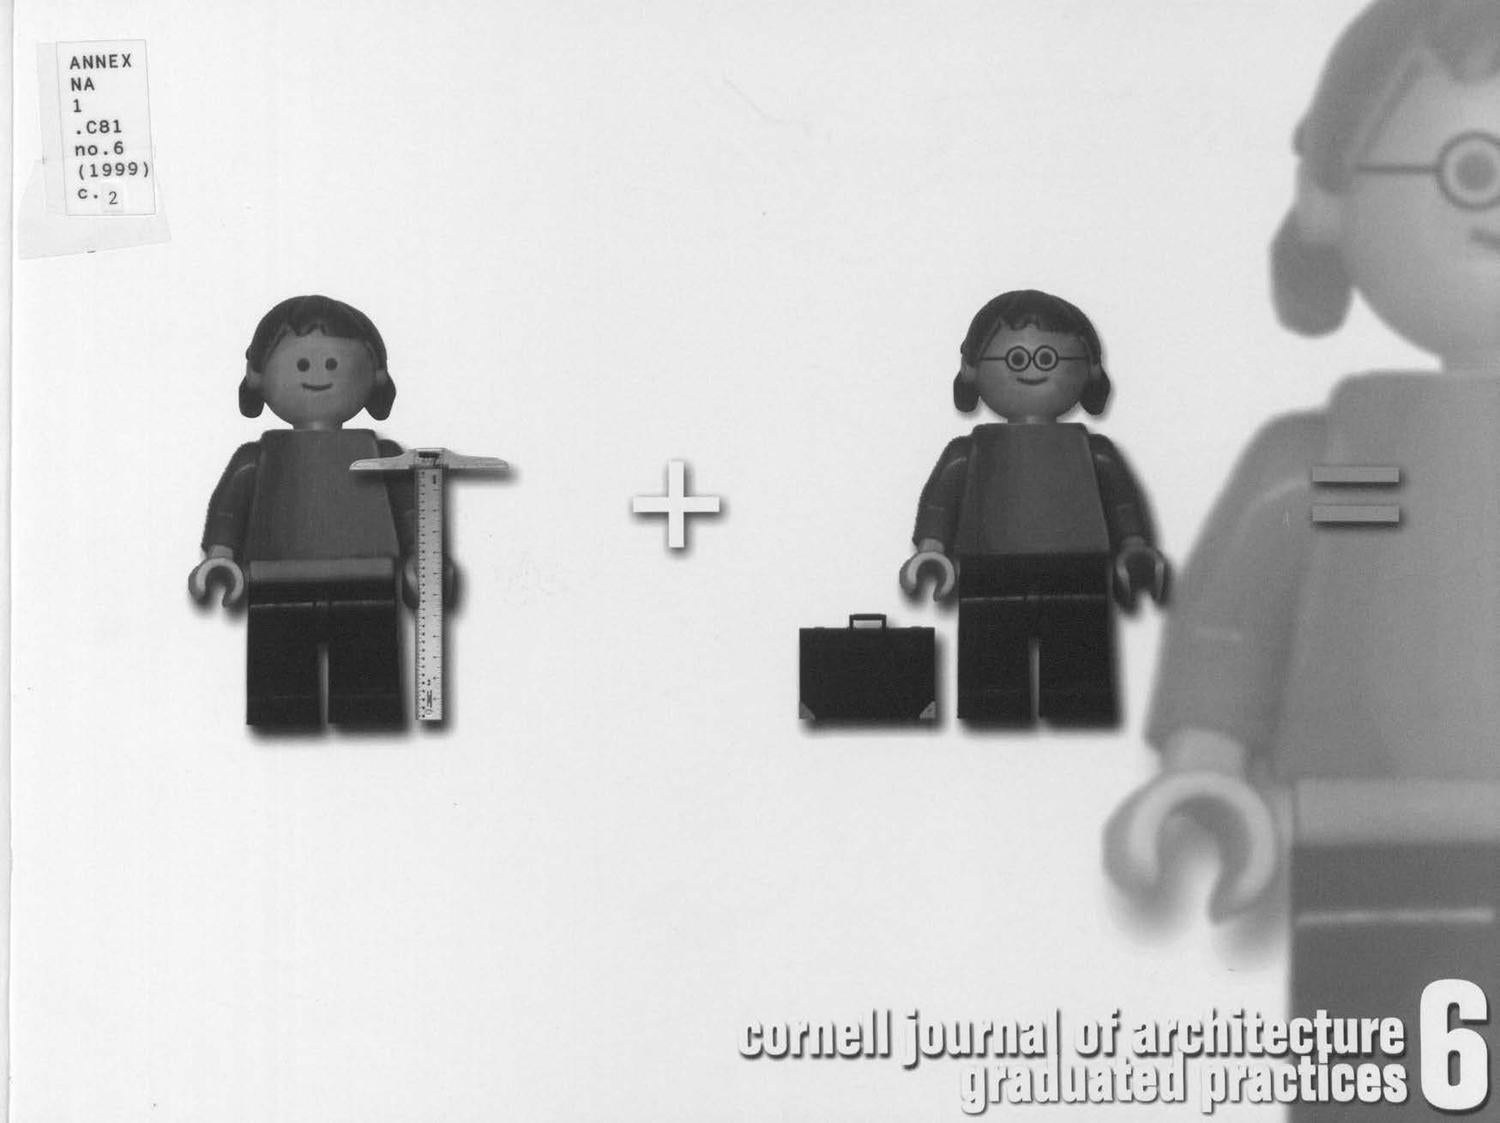 Cornell Journal Of Architecture Vol 6 By Aap Issuu No Disassemble Lego Ideas Proposal Makes It Easy To